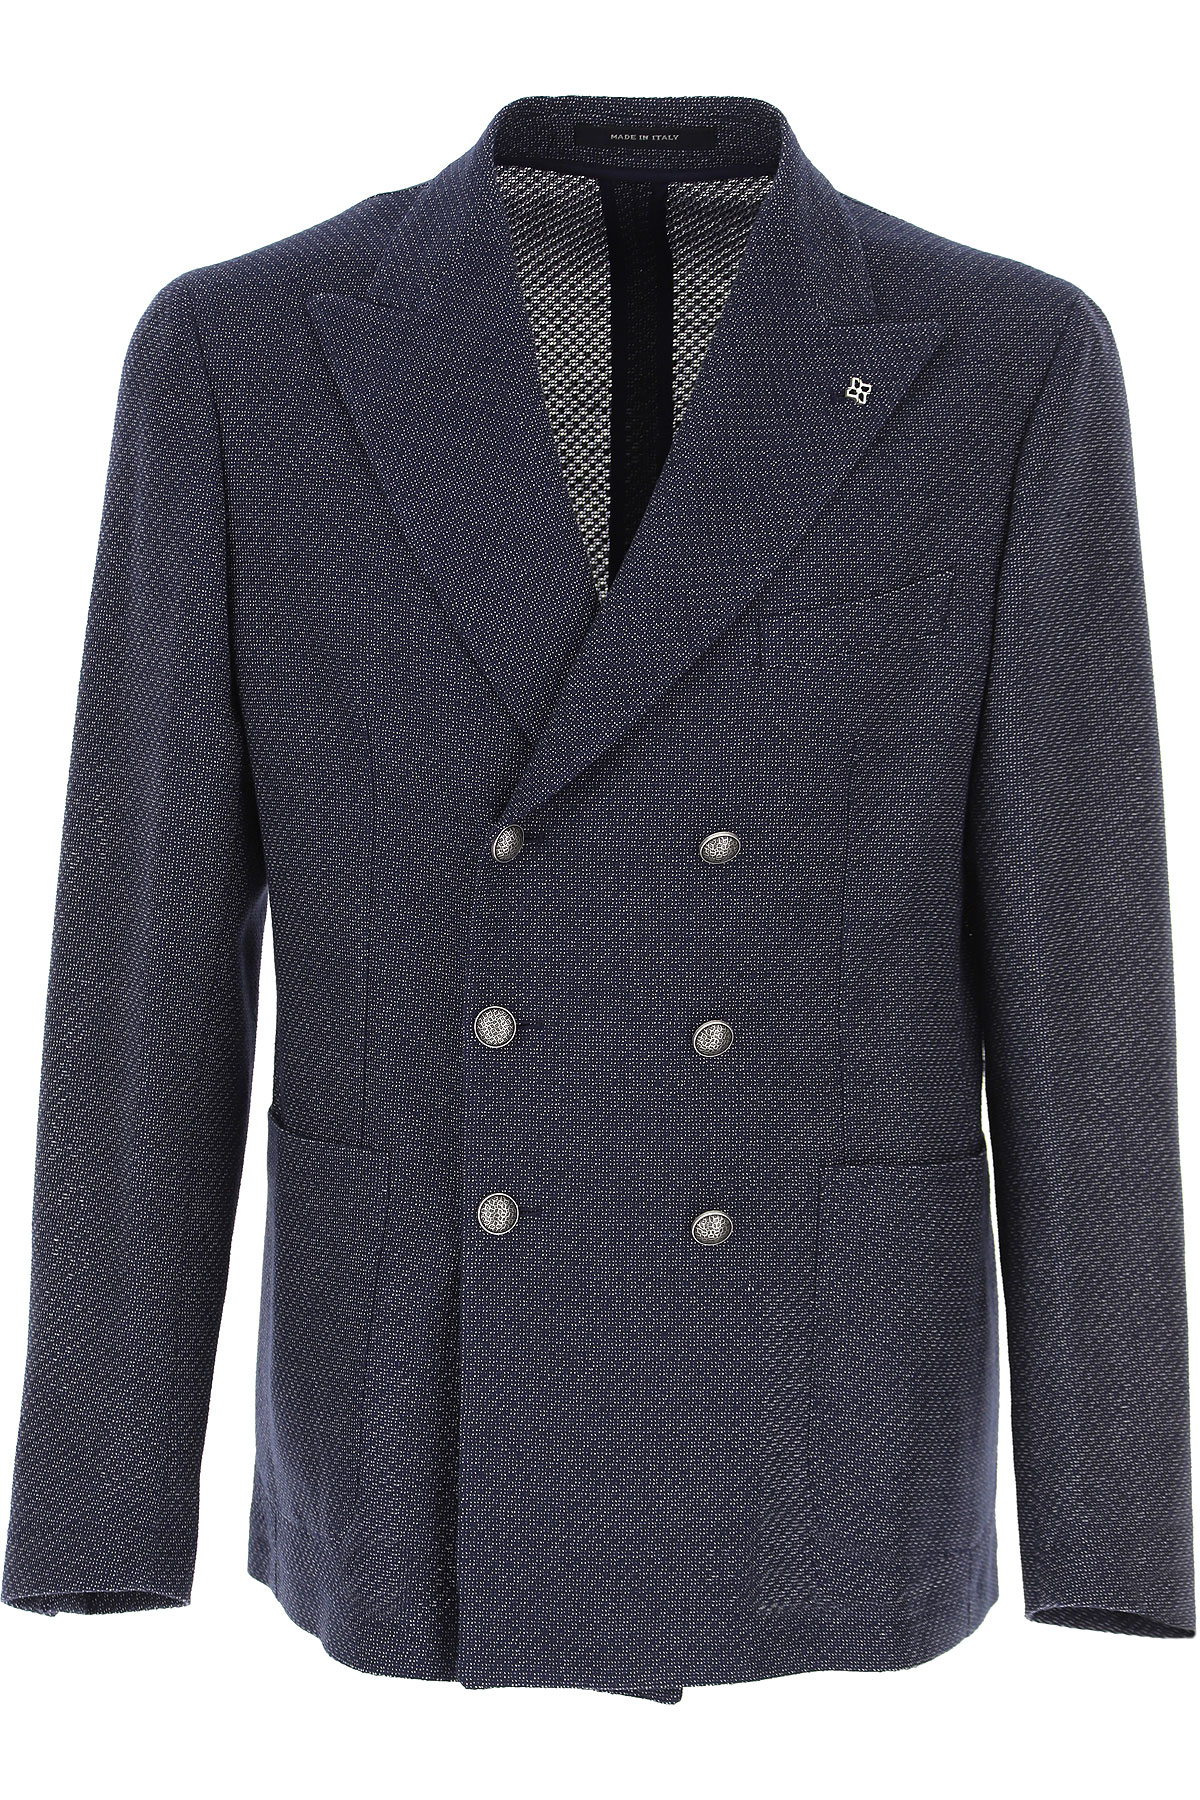 Tagliatore Blazer for Men, Sport Coat On Sale, Blue, Cotton, 2019, L M S XL XXL